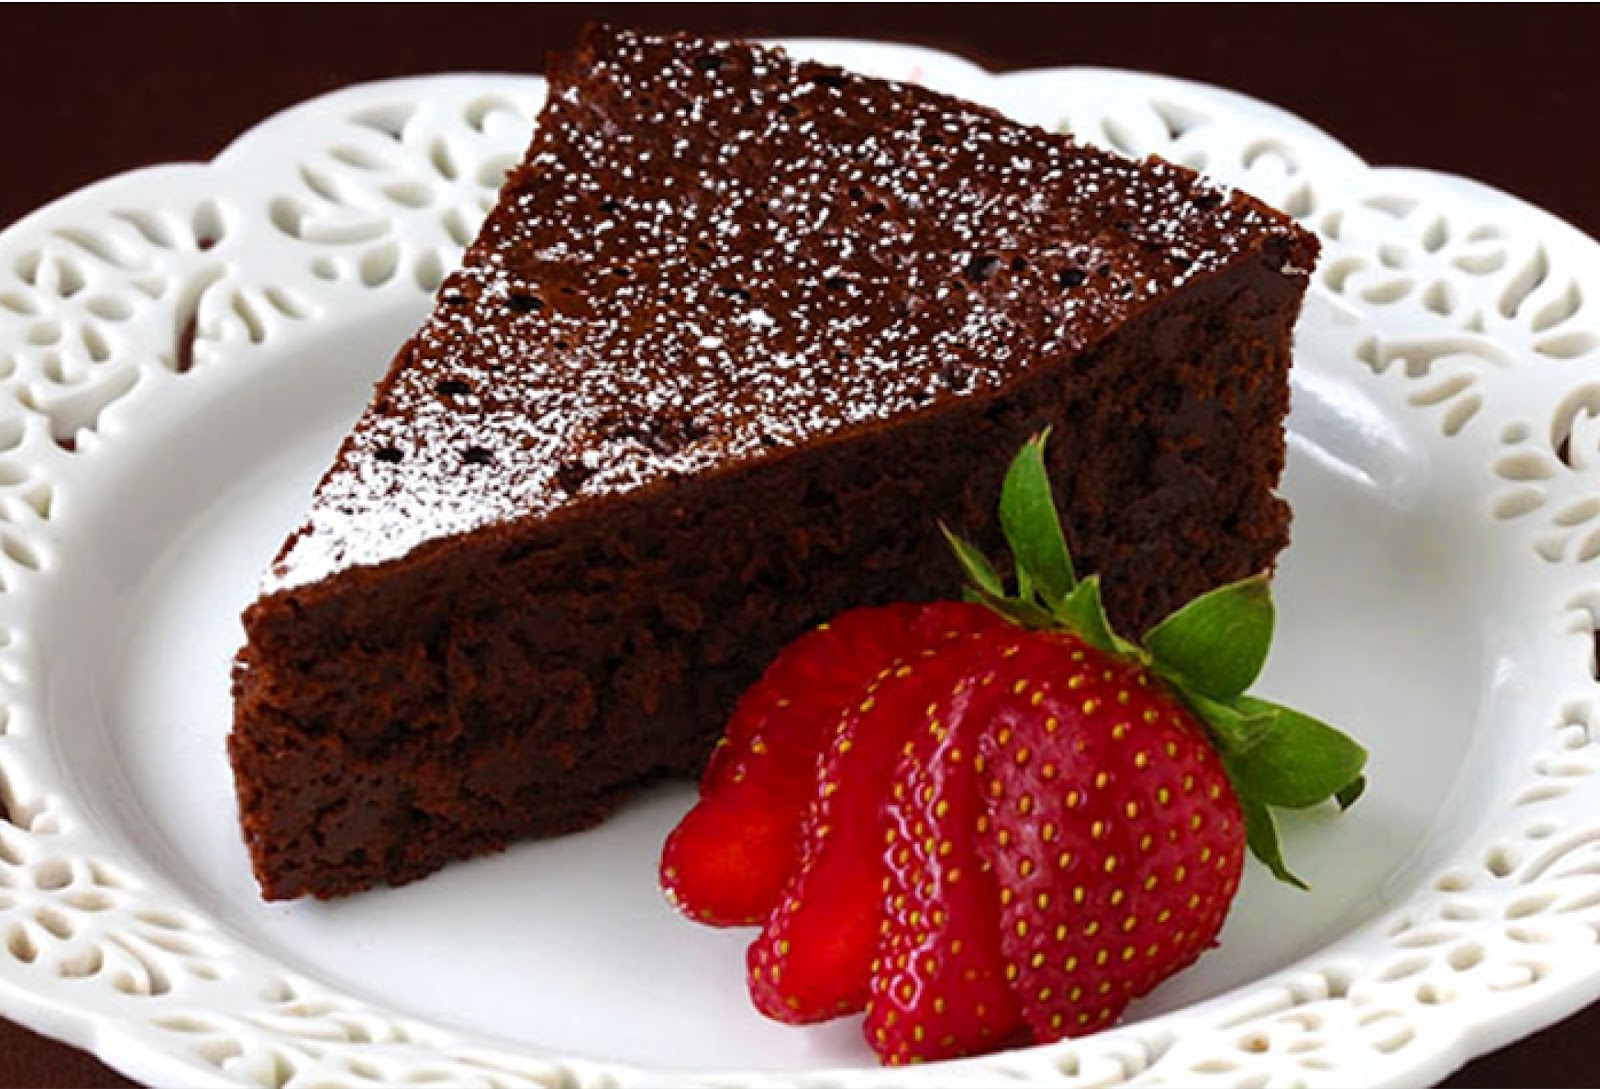 Savory Table: Flourless Chocolate Cake